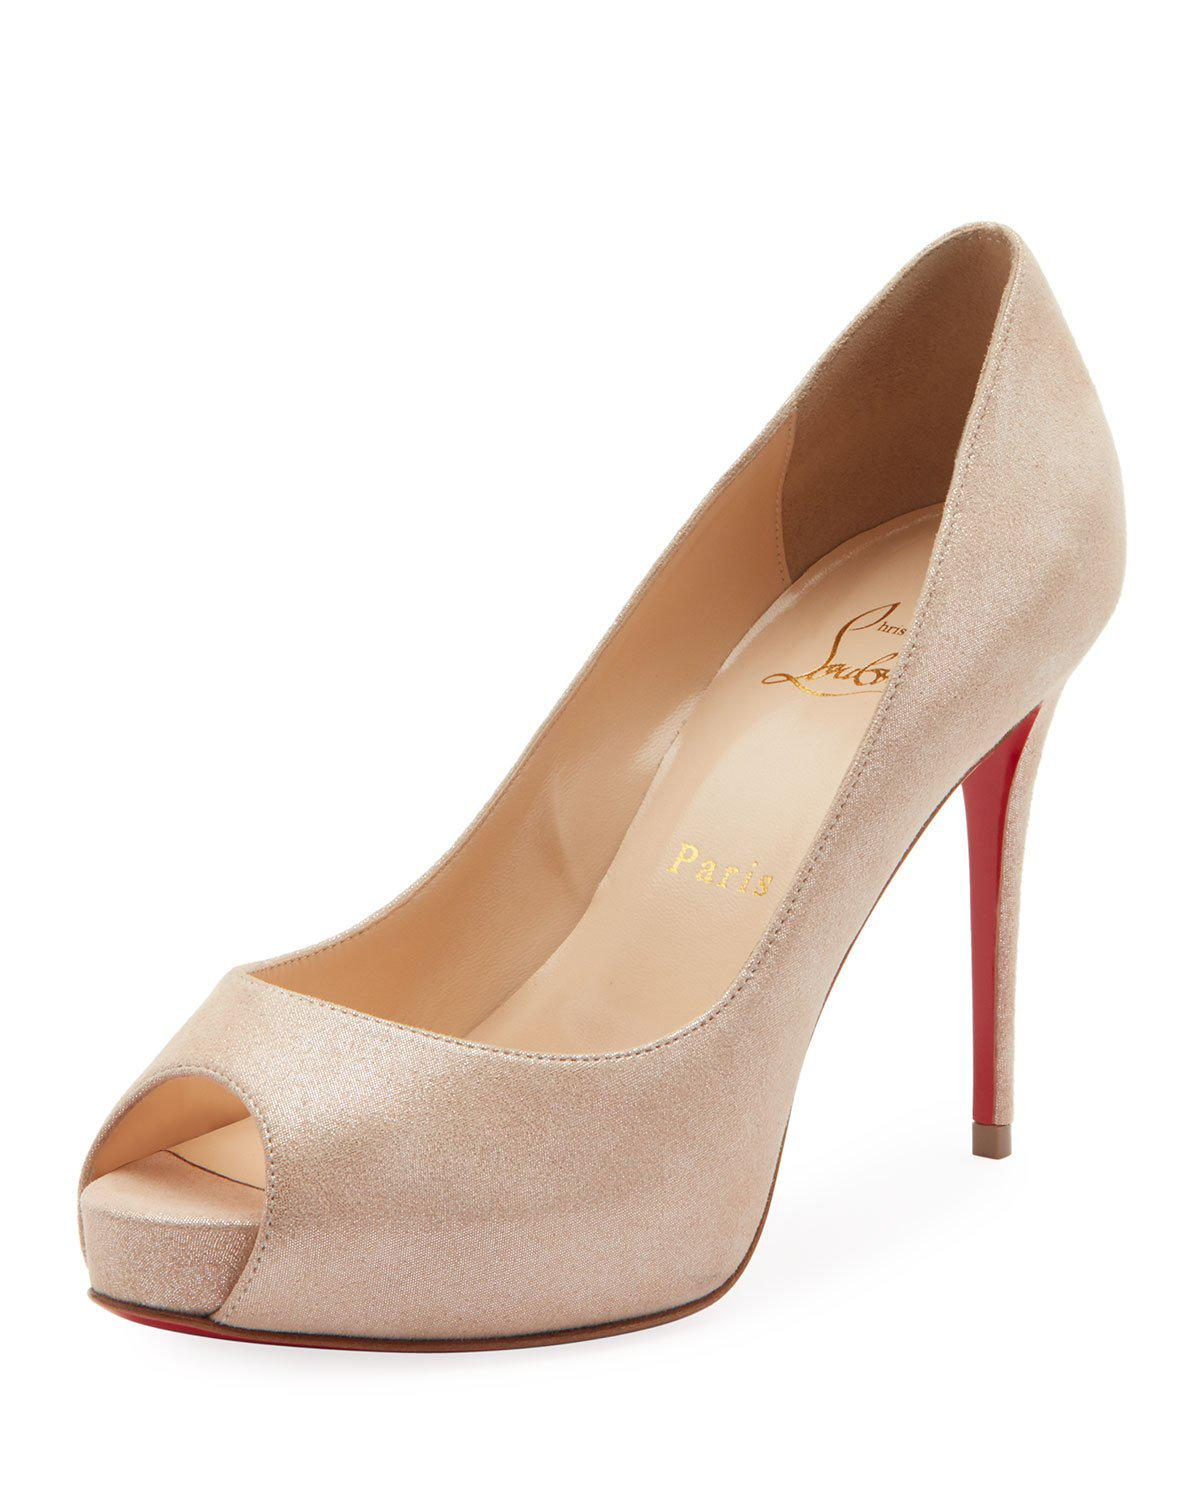 96a0b9b4a9a8 Christian Louboutin New Very Prive Peep-Toe Red Sole Pumps In Nude ...